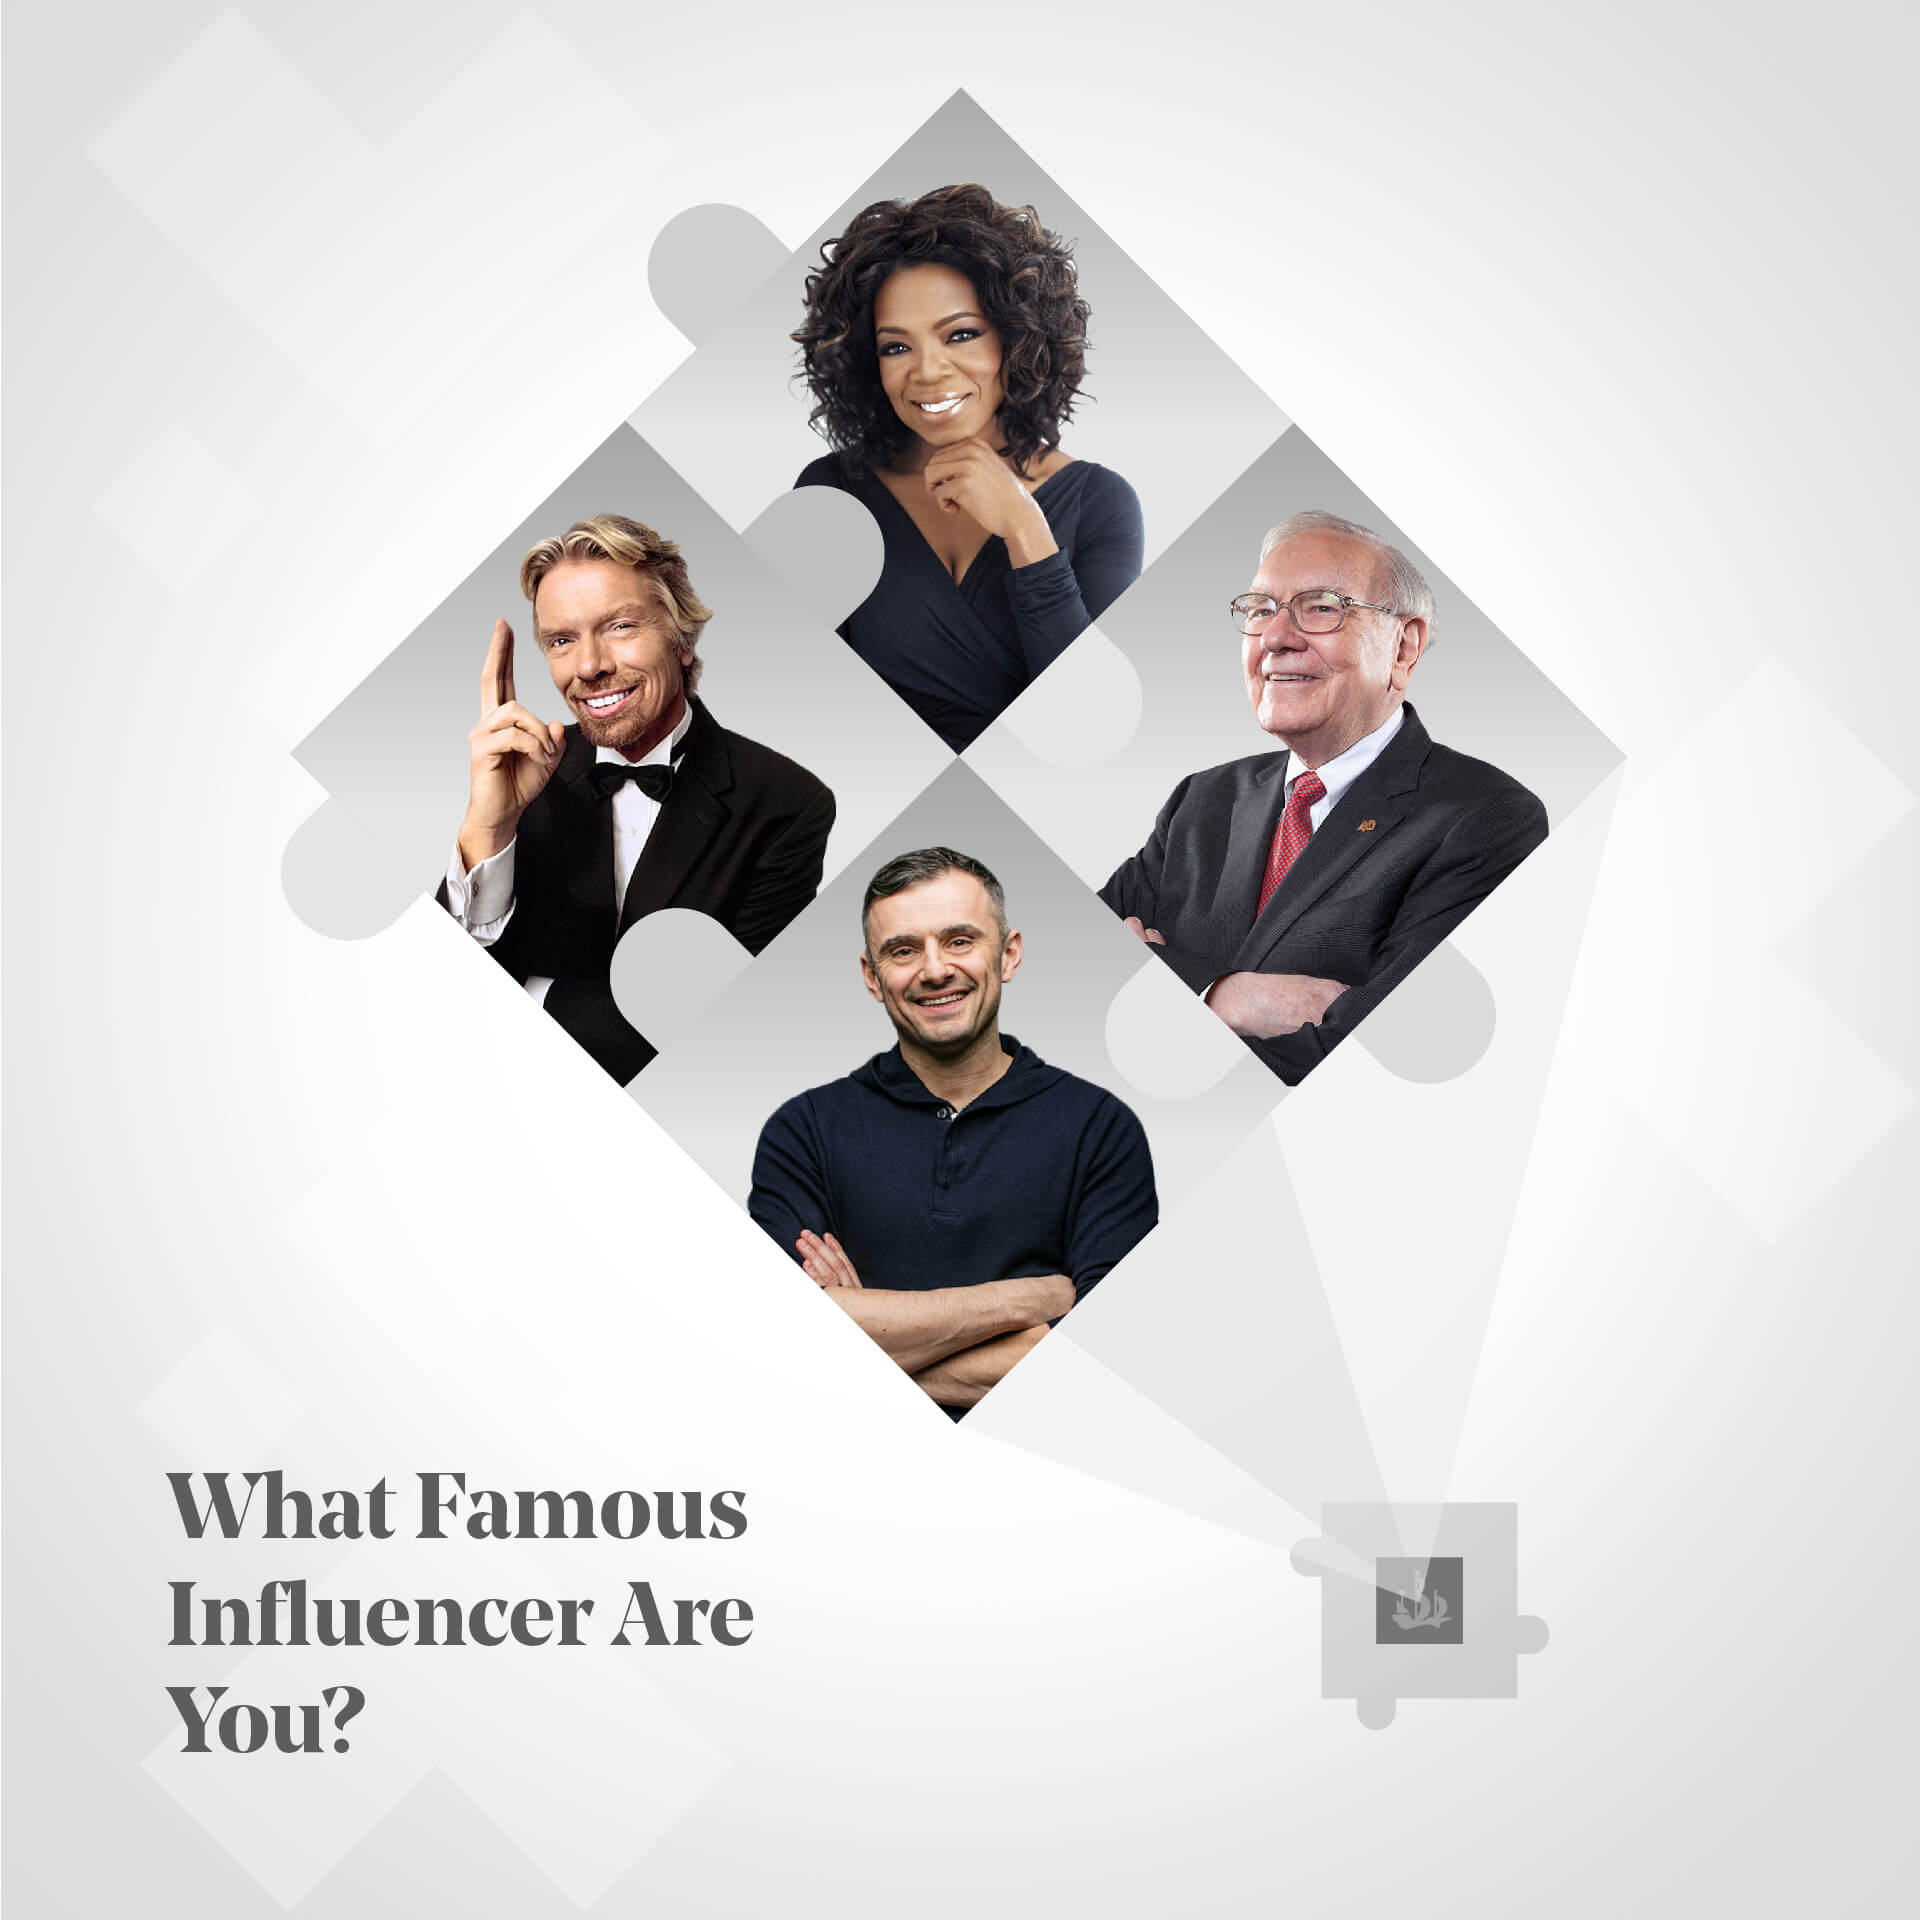 Influencer SuperPower Test (4 Personalities) | What Famous Influencer Are You?